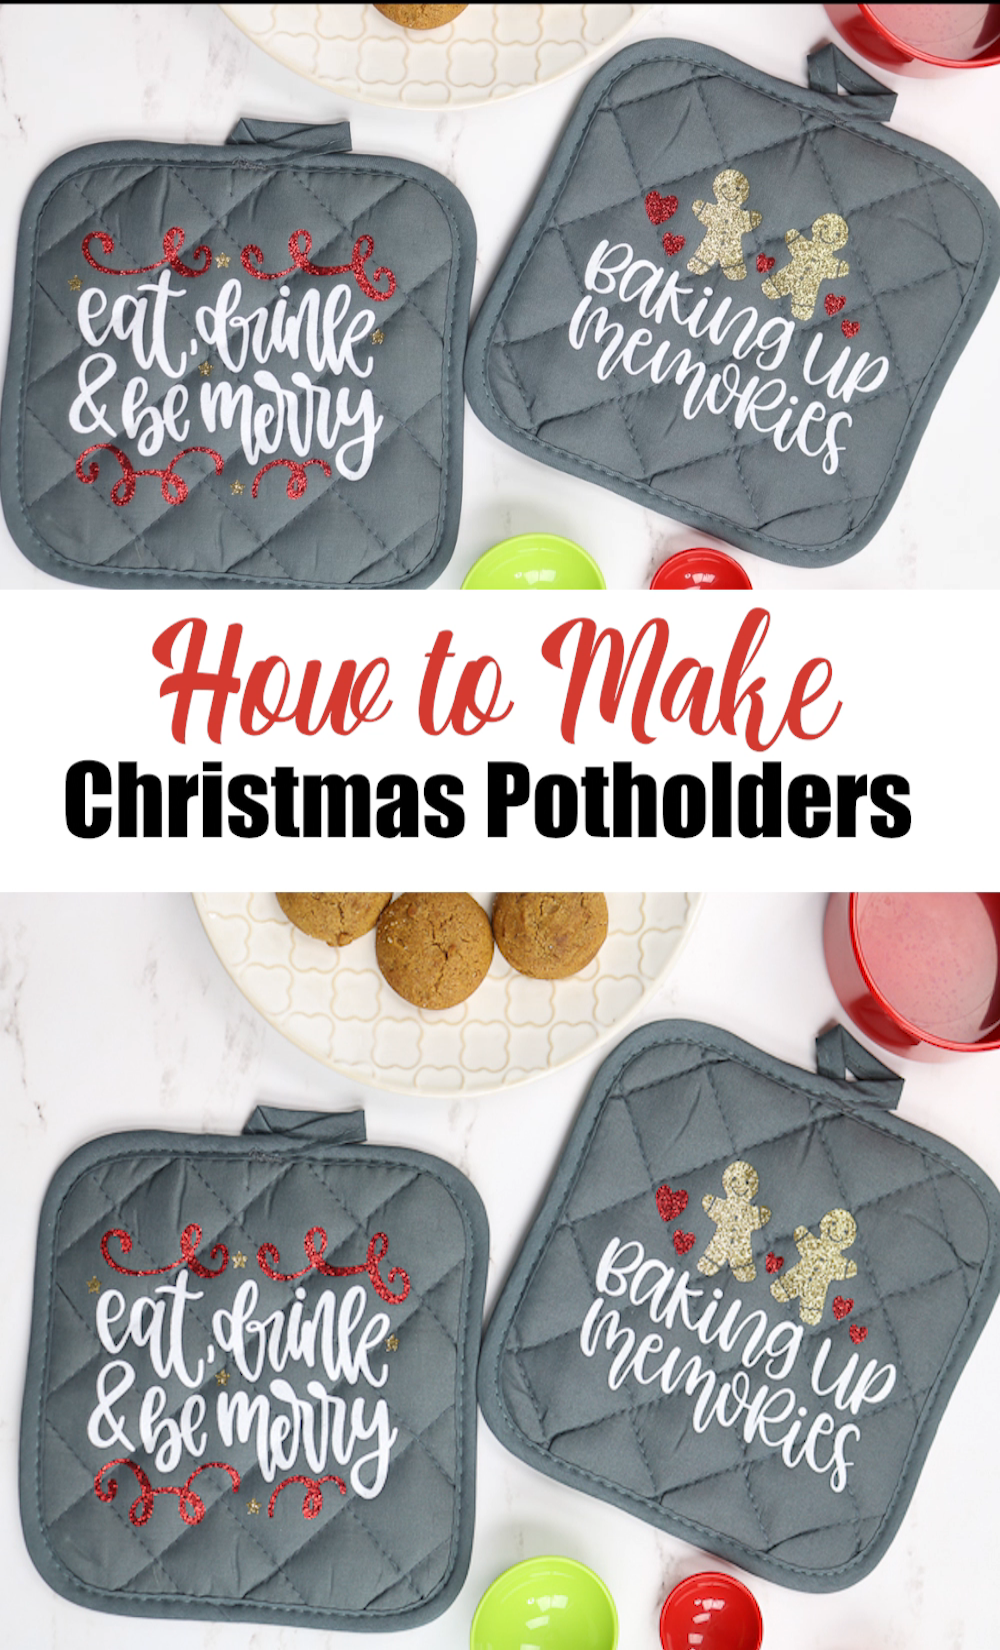 Want a quick and easy Christmas gift idea? Make Christmas potholders! Add them to a gift basket and you have a cute gift idea that everyone will love! Plus they are super inexpensive to make! Get the cut files for the ones shown when you click then link then start cutting these designs on your Cricut machine! #cricut #cricutcreated #cricutlove #cricutproject #heattransfervinyl #htv #glitter #kitchen #giftidea #christmasgift #christmas #gifts #holidays #cricutexplore #cricutmaker #cutfile